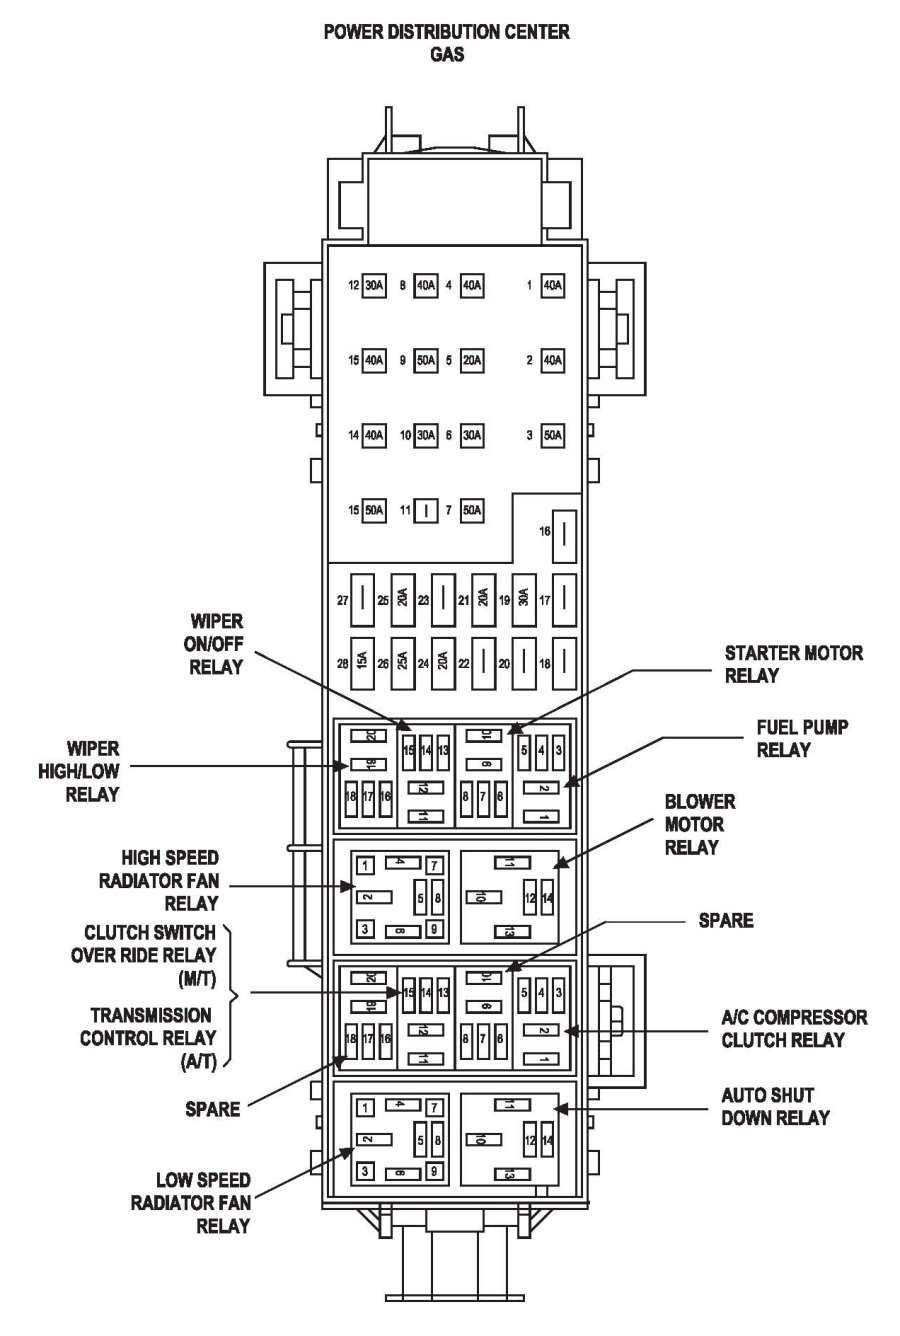 hight resolution of 06 jeep wrangler fuse diagram wiring diagram hub 01 jeep wrangler 05 jeep wrangler fuse box